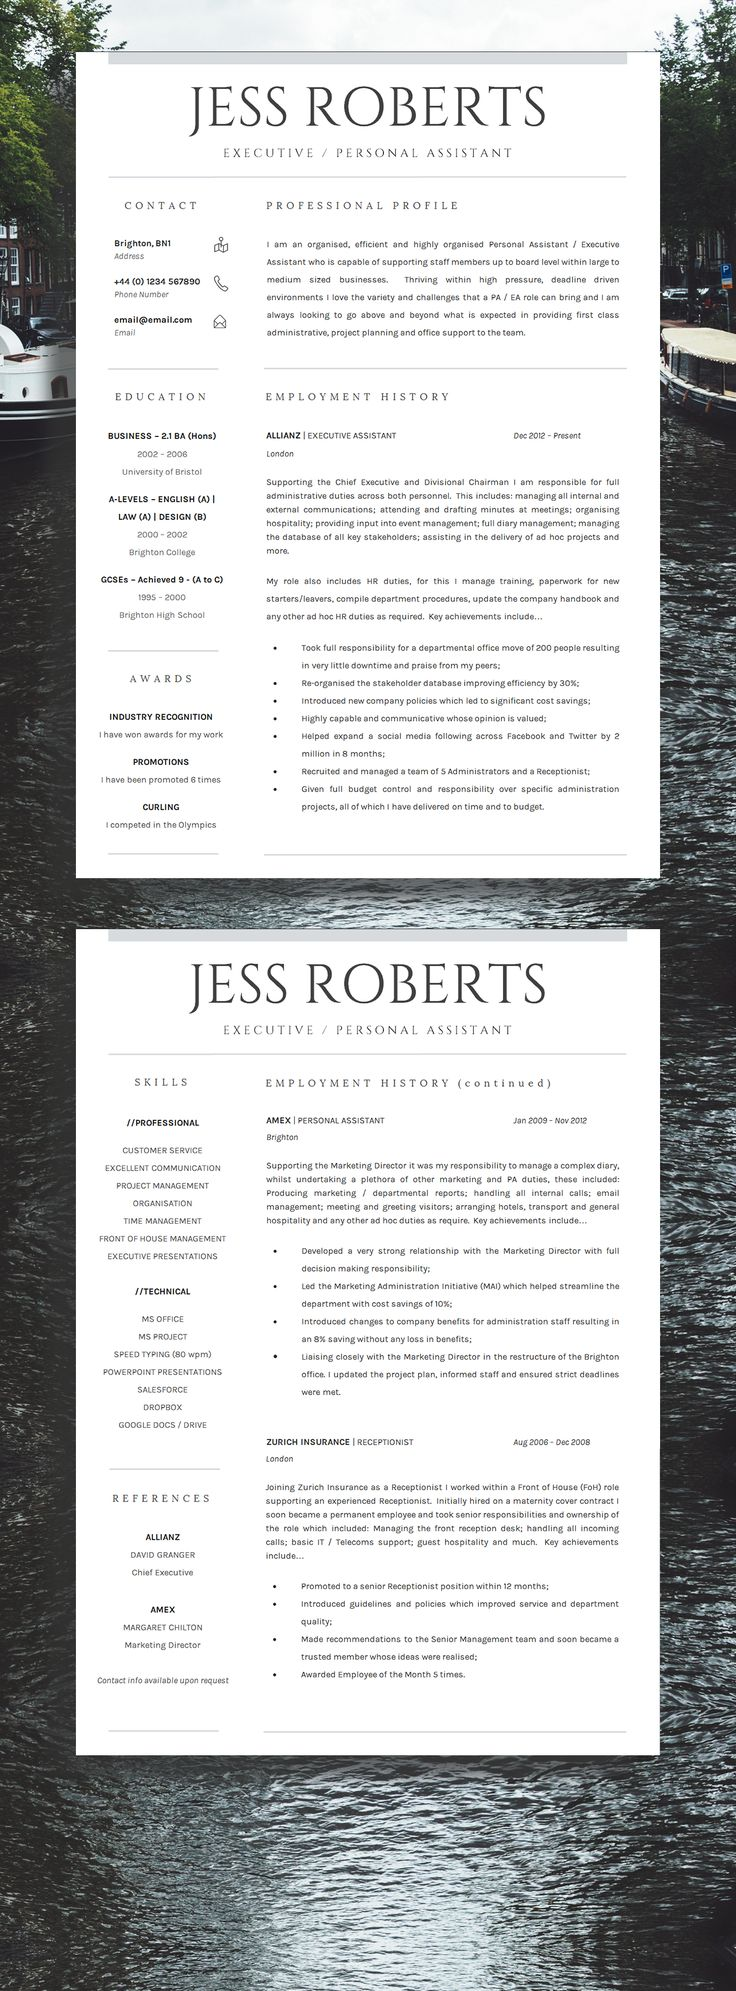 Cool Resumes Sometimes the most striking resumes